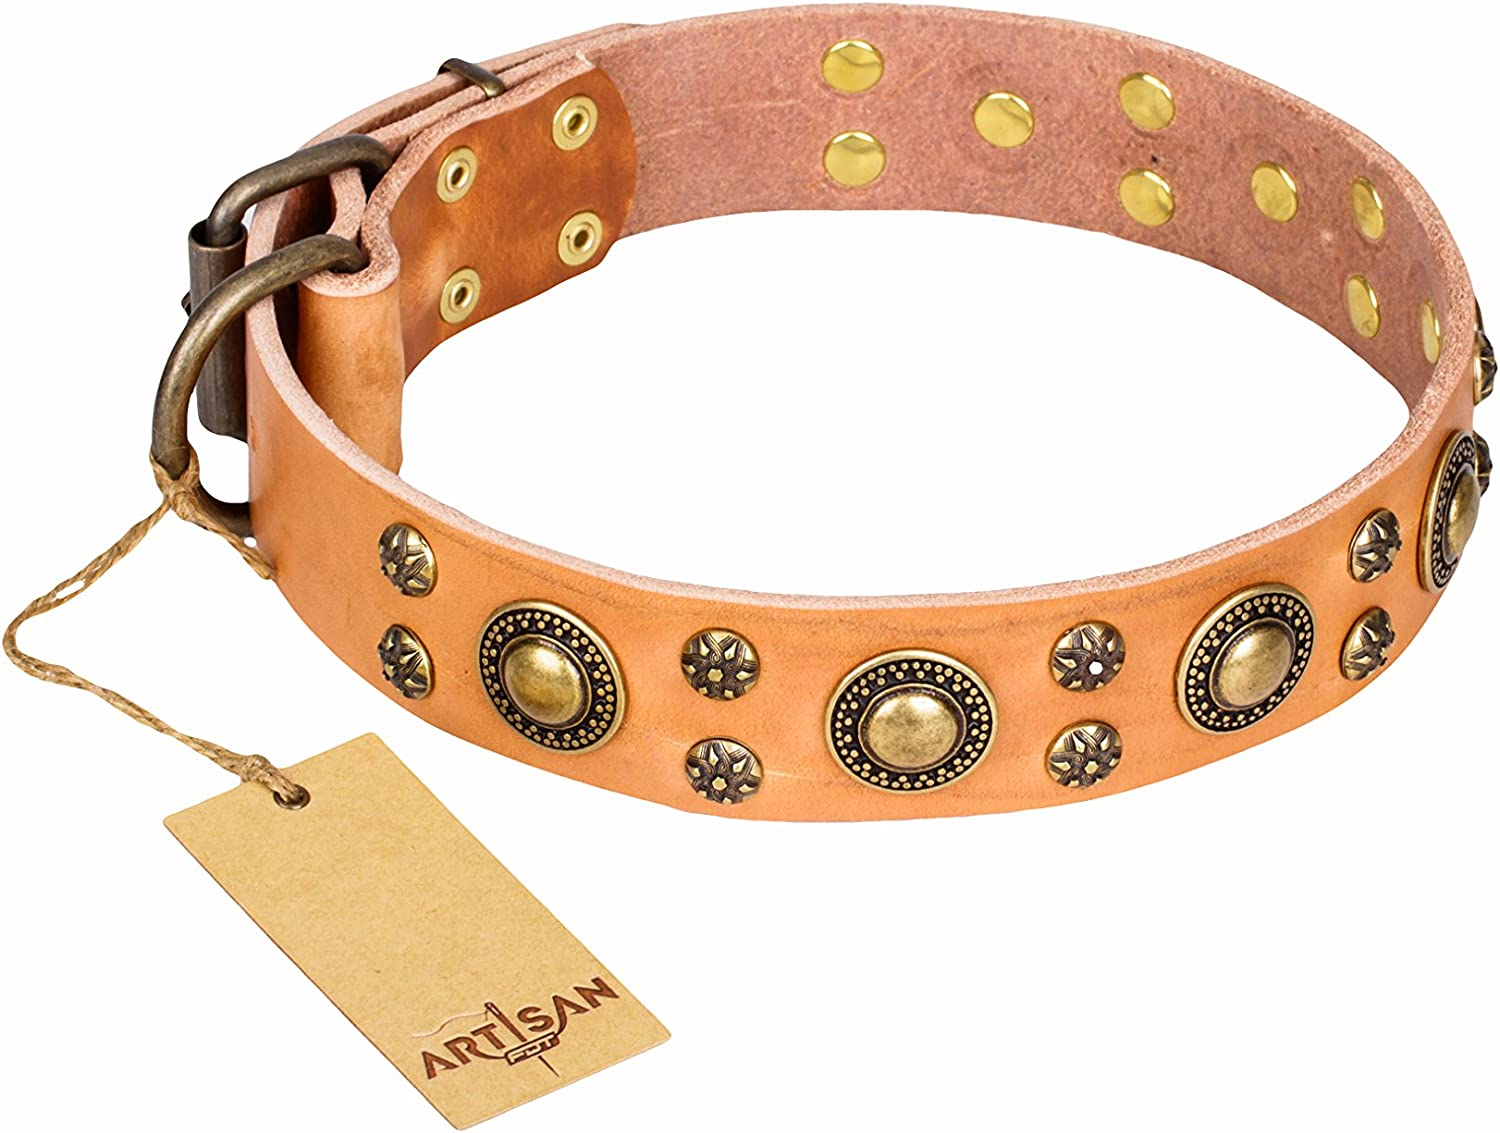 36 inch Tan Leather Dog Collar with Brass Plated Decorations   Sophisticated Circles  Handcrafted by Artisan